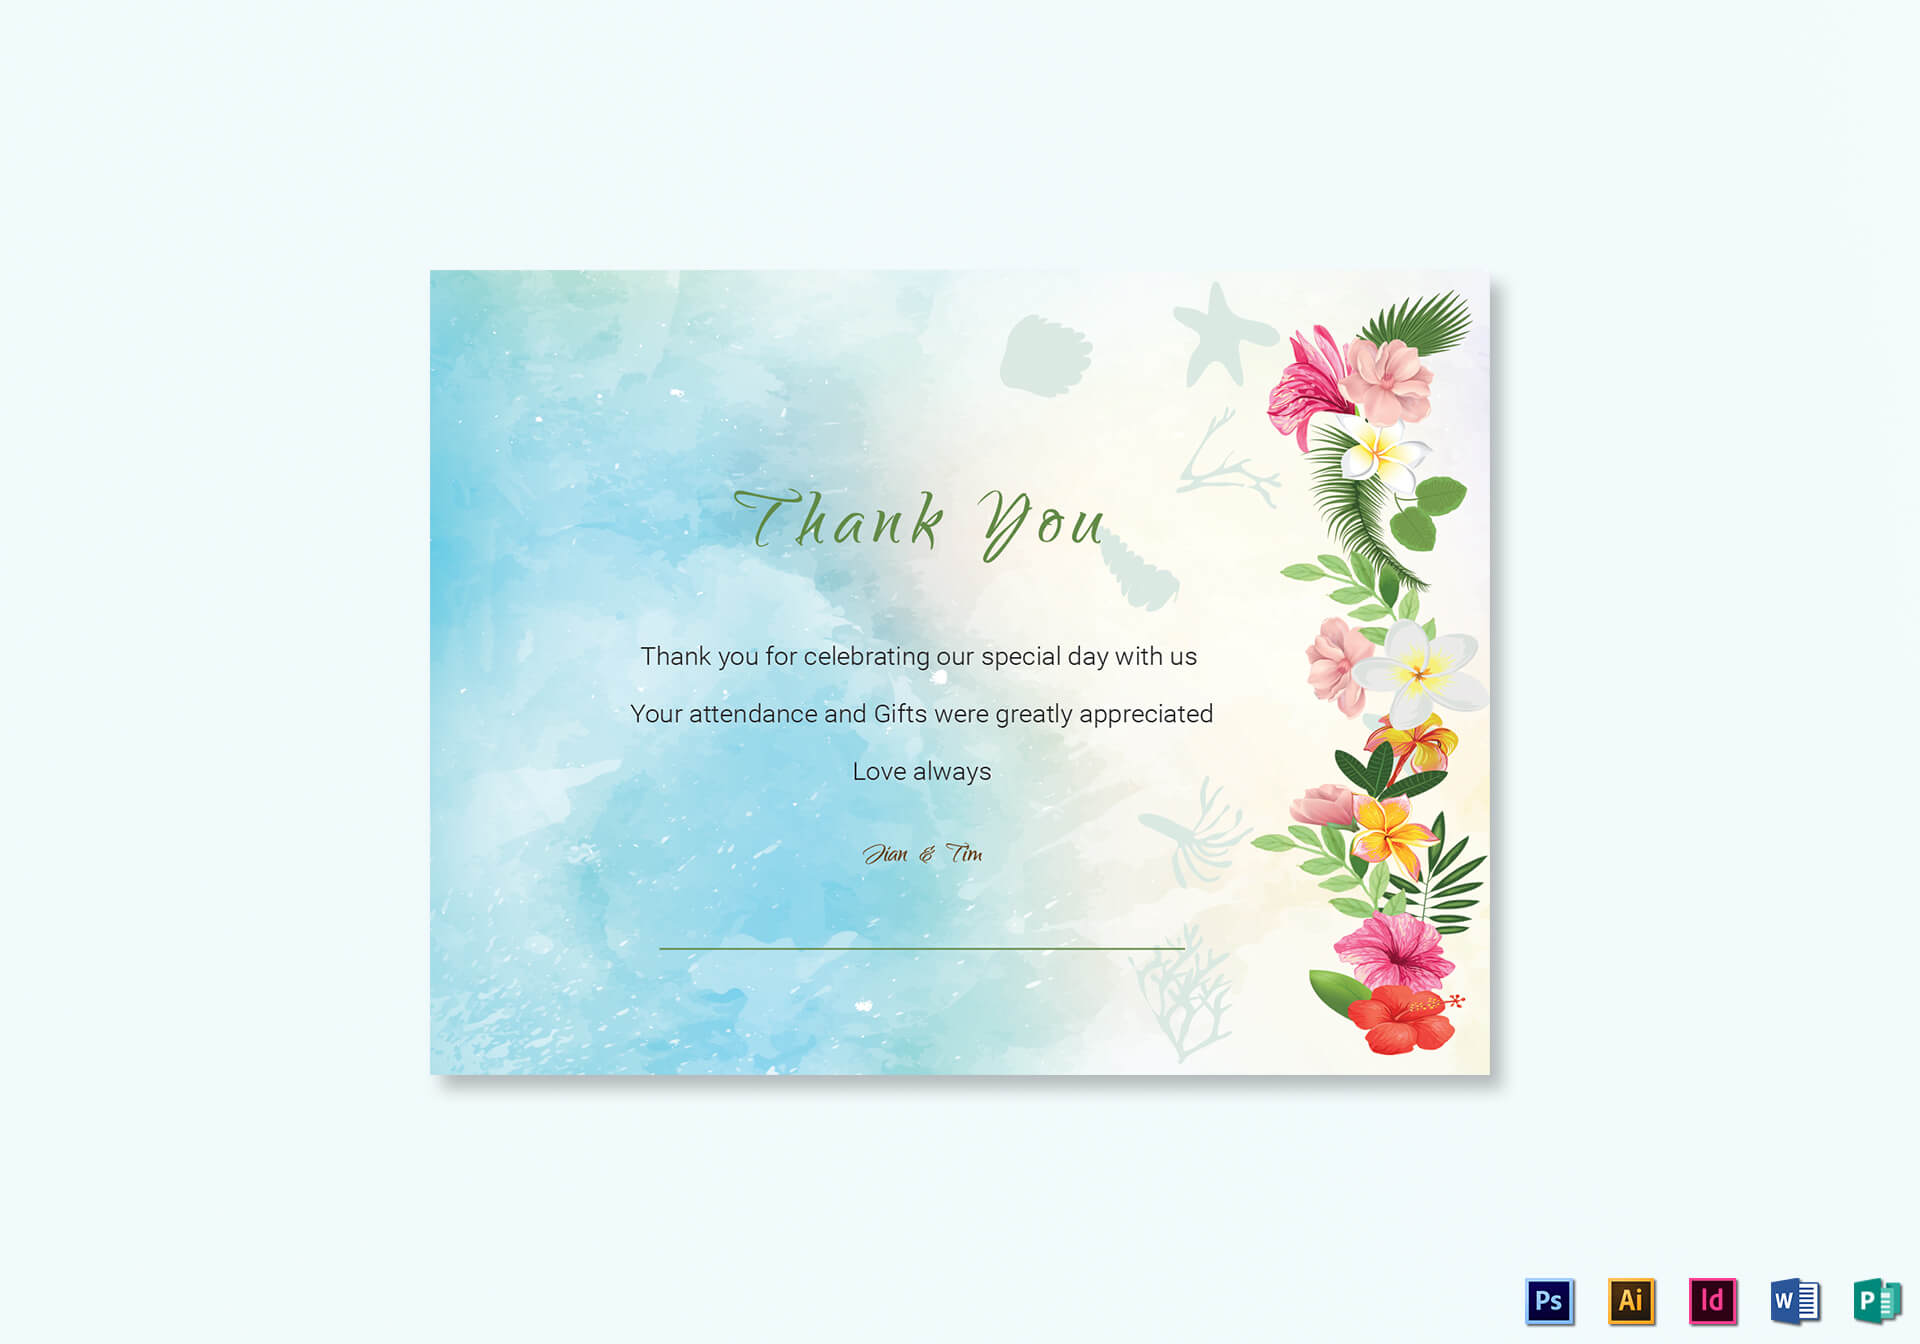 010 Thank You Card Template Word Top Ideas Business Free With Regard To Thank You Card Template Word